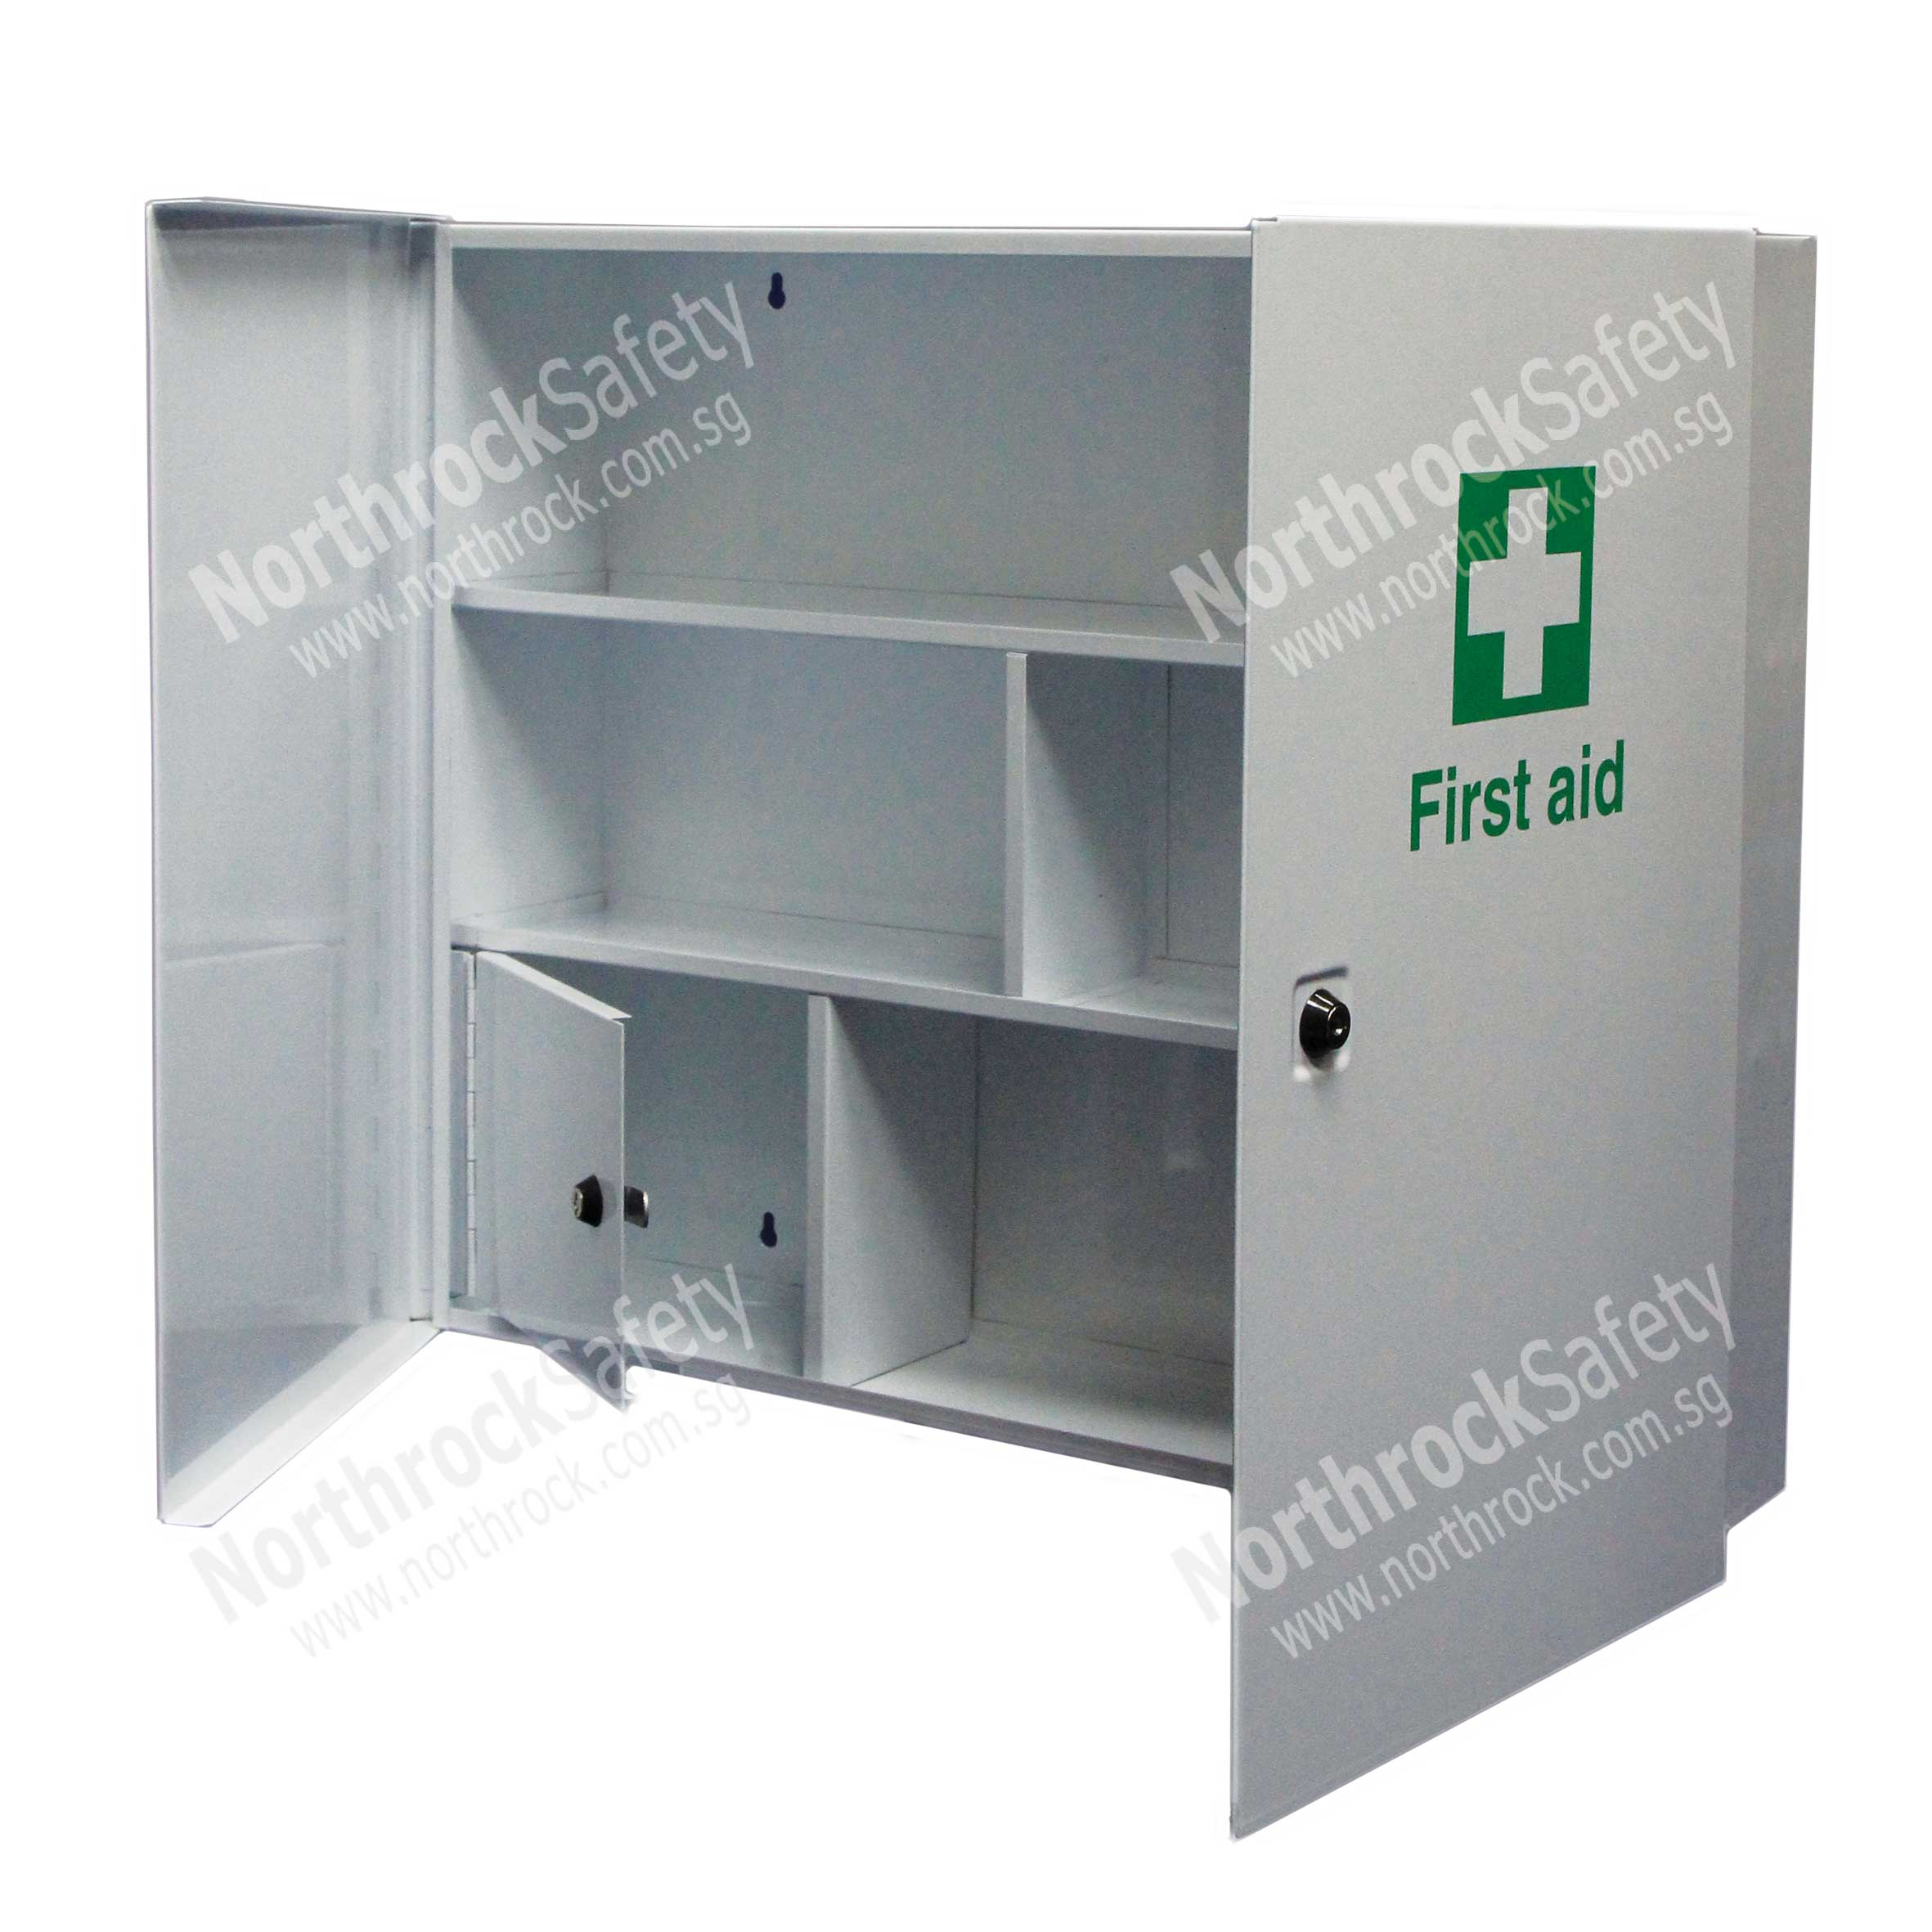 northrock safety metal first aid cabinet metal first aid cabinet singapore. Black Bedroom Furniture Sets. Home Design Ideas